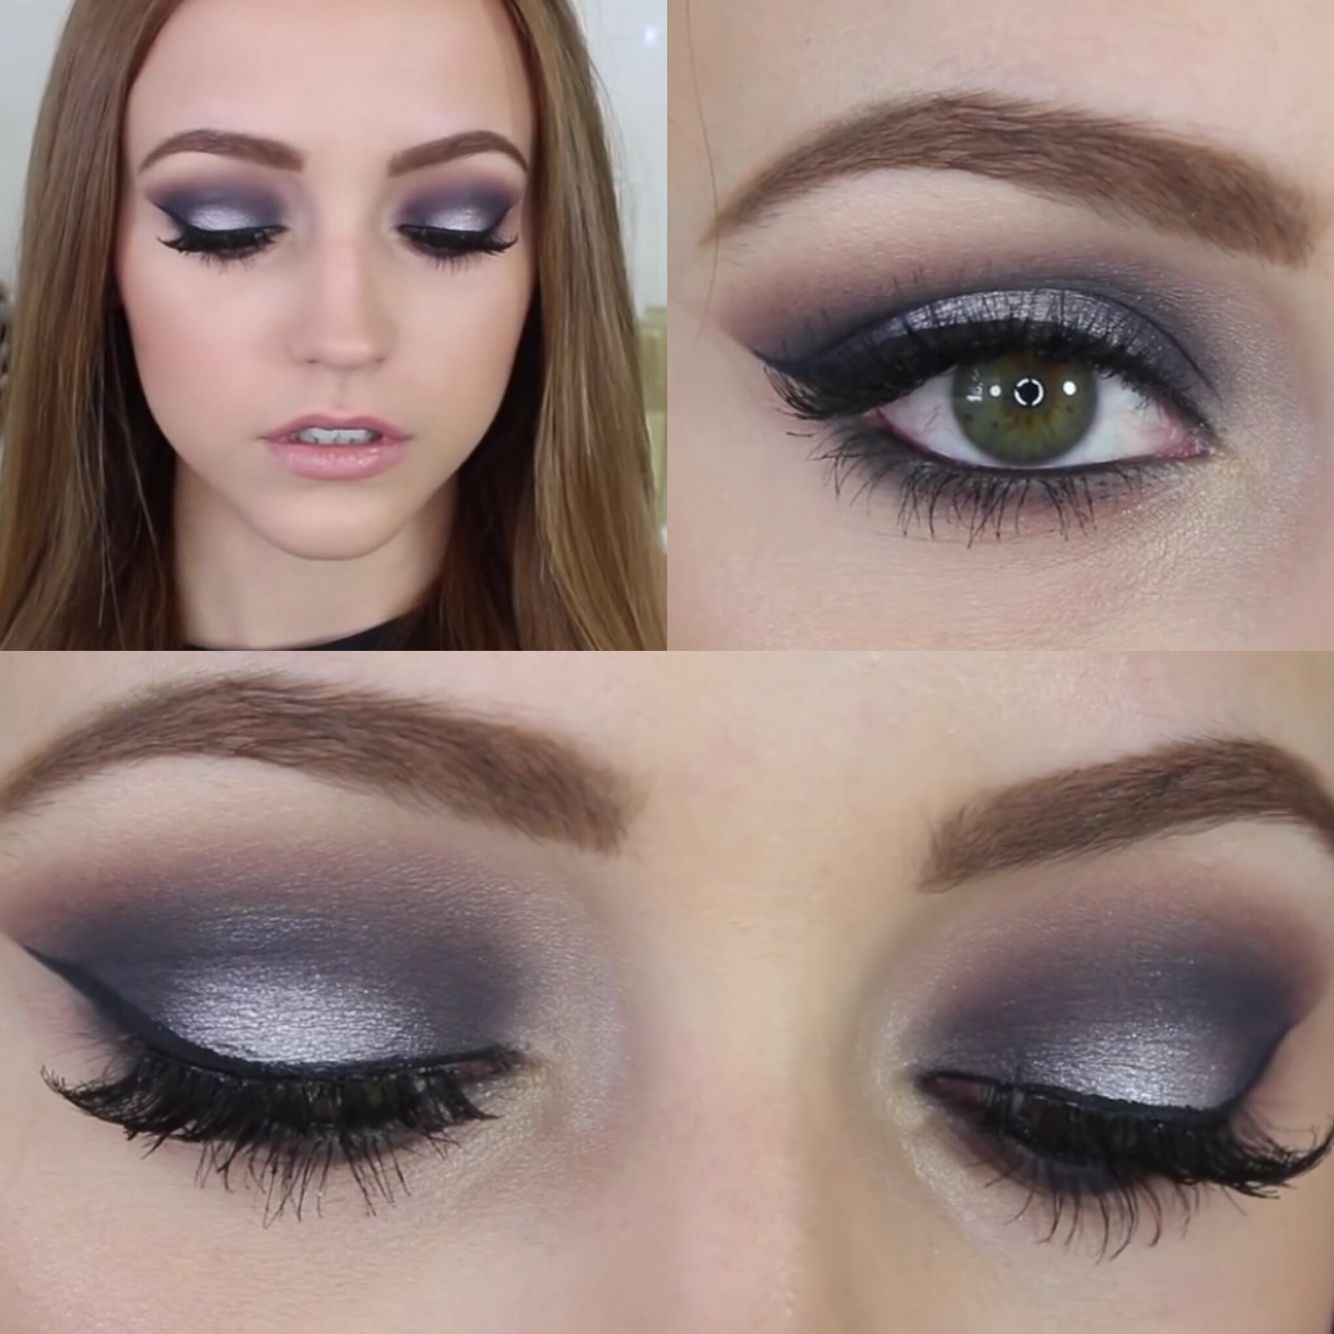 How to even out your eyelids without surgery youtube - Eye Makeup Tips For Nearly All Women With Blue Eyes Makeup Application Can Be Difficult Not All Women Have The Same Basic Eye Shades So It Can Be Even